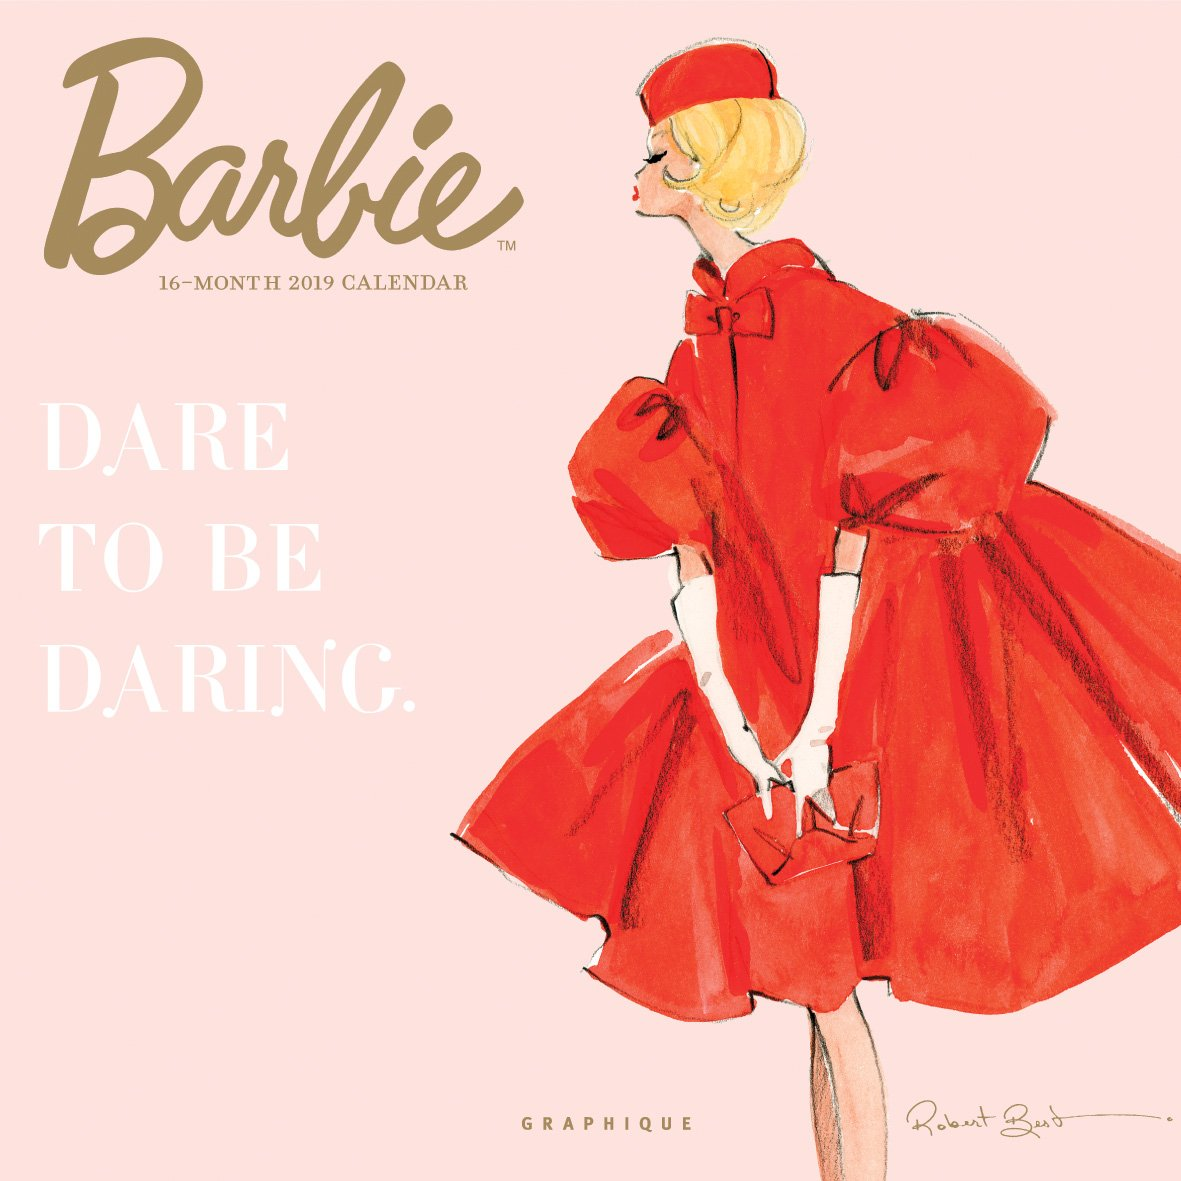 Graphique Classic Barbie Wall Calendar - 16-Month 2019 Calendar, 12''x12'' w/ 3 Languages, 4-Month Preview, Marked Holidays